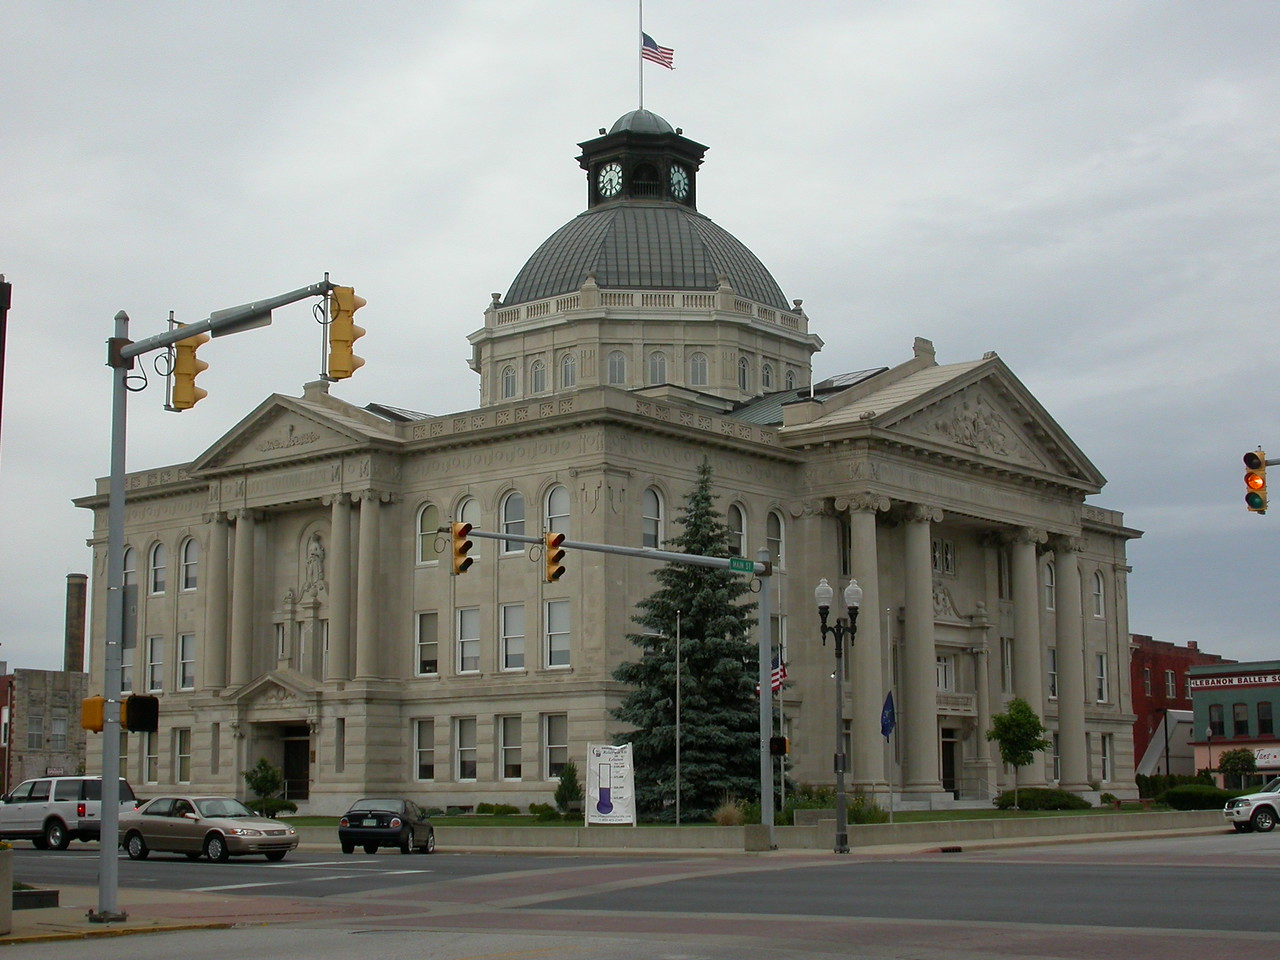 Boone County Courthouse, Lebanon, Indiana, June 2004.